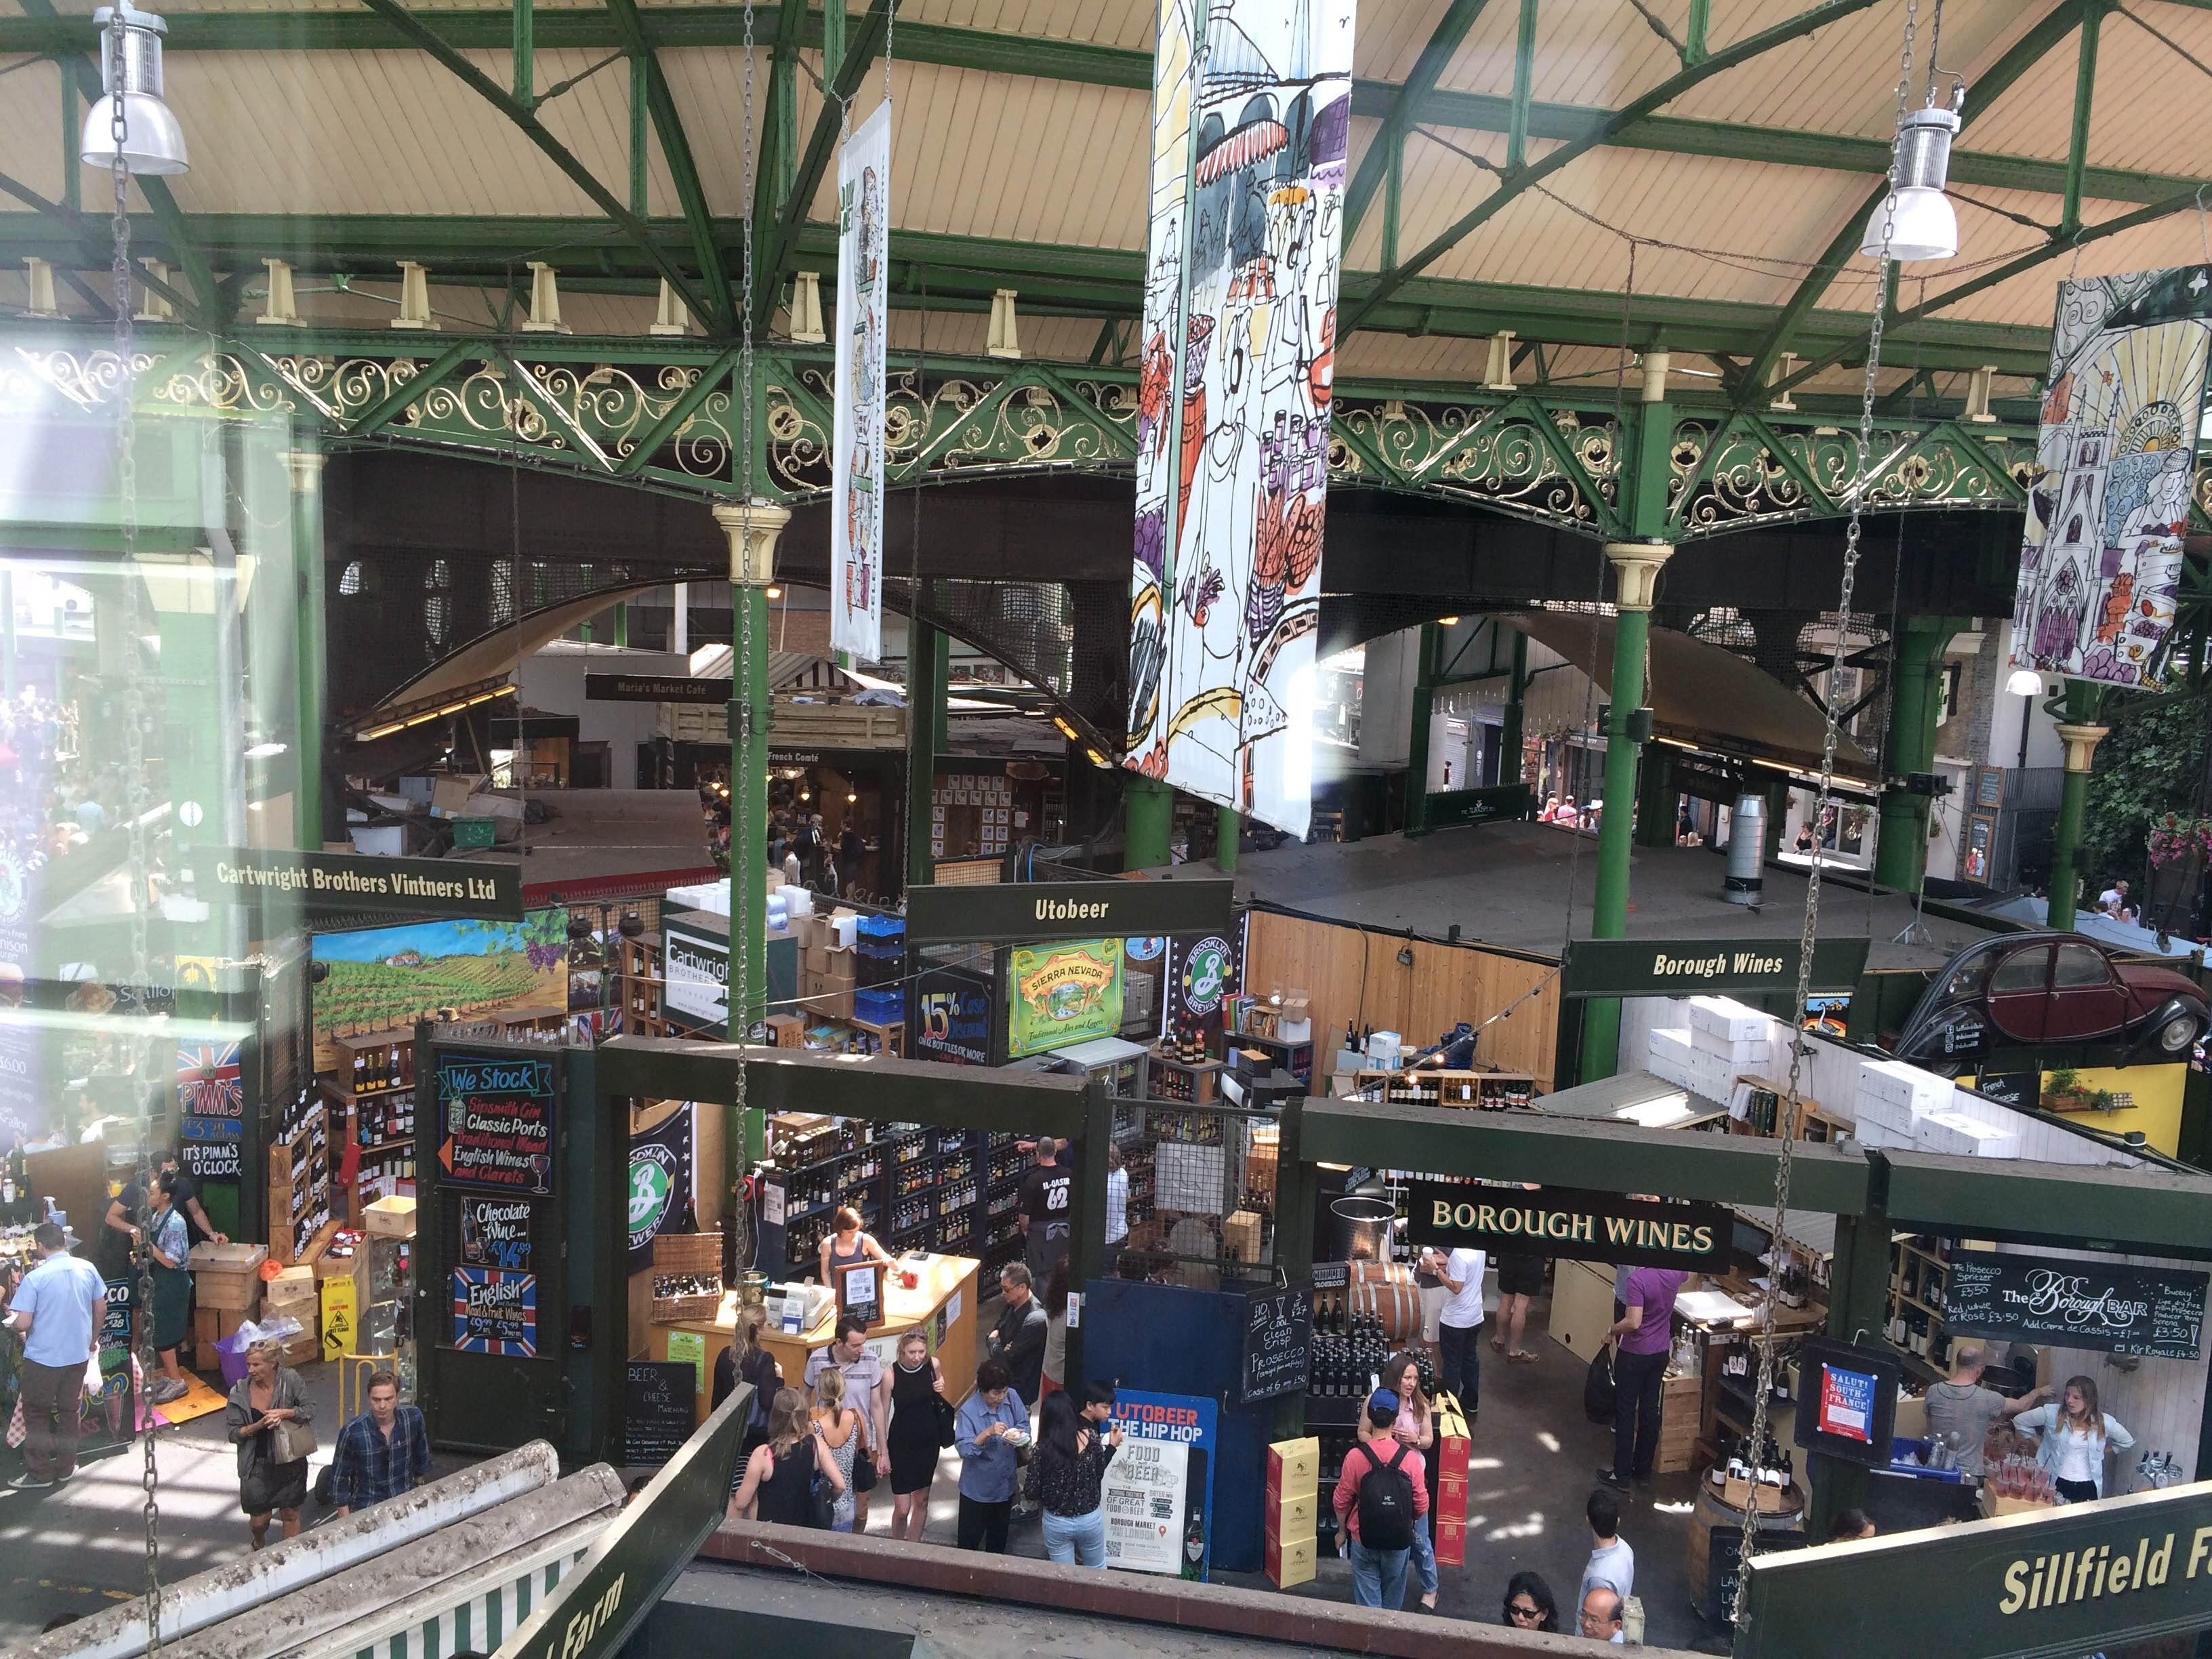 Ciudad en Borough Market